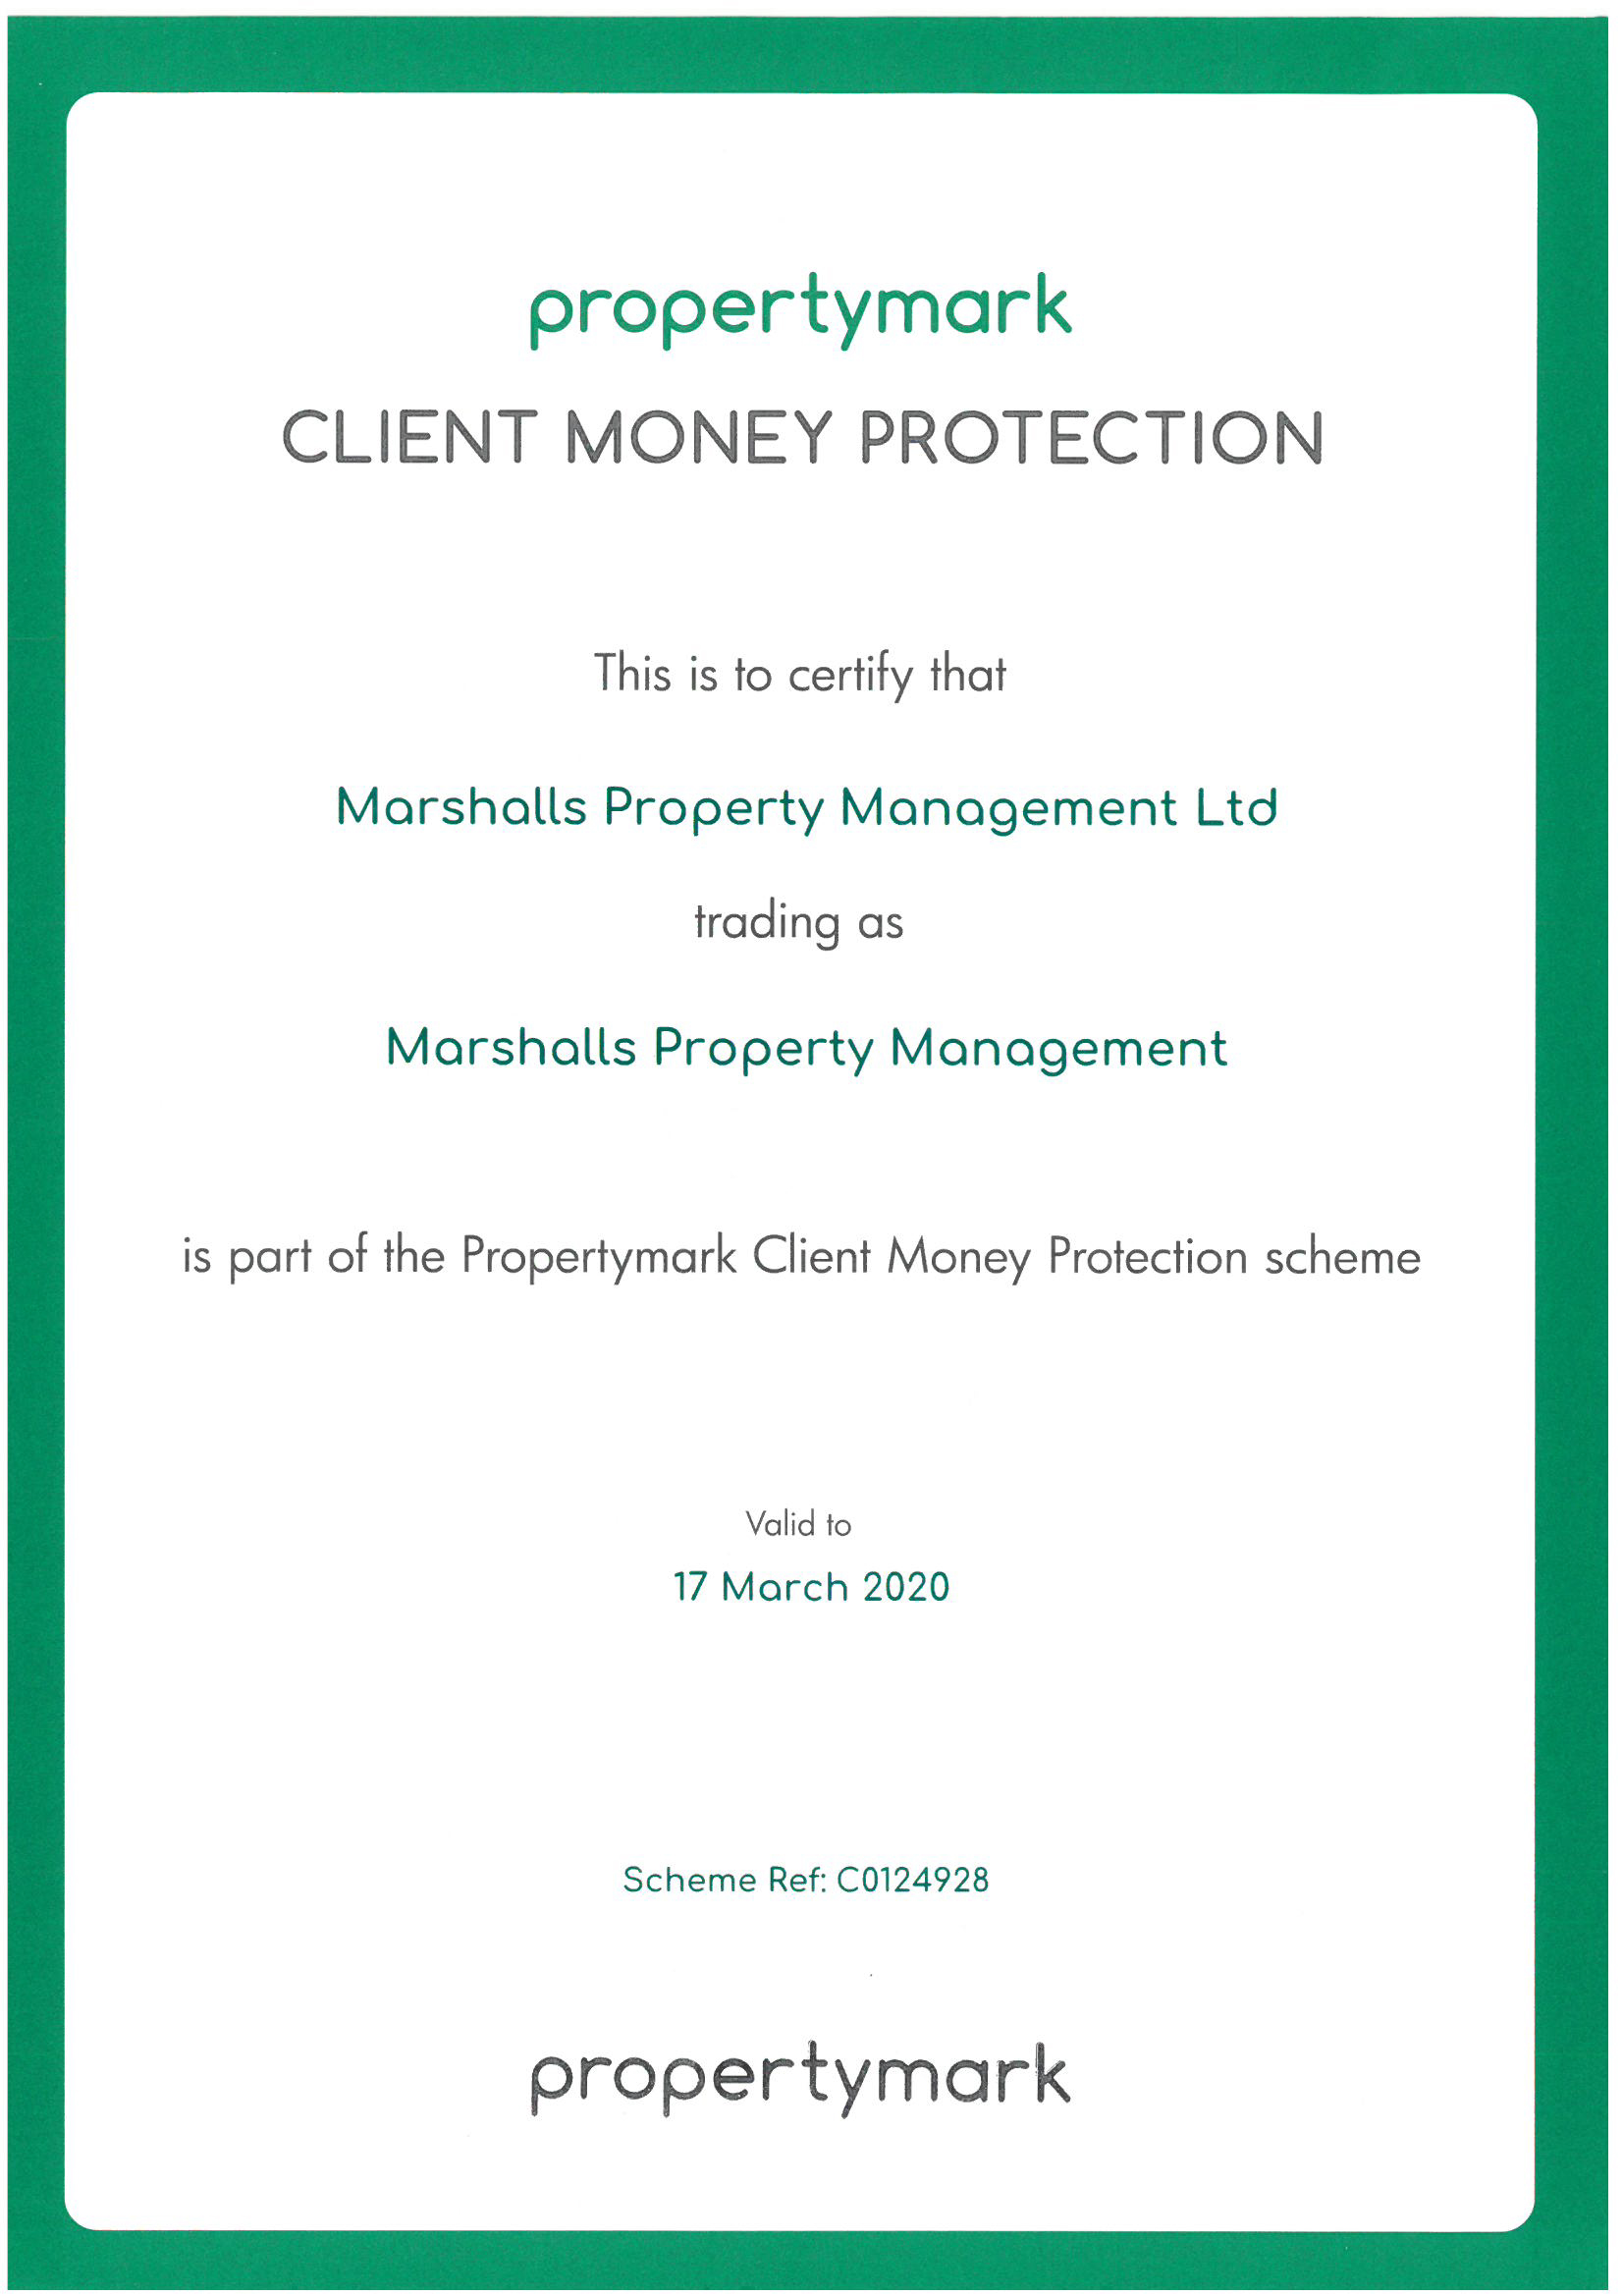 client_money_protection